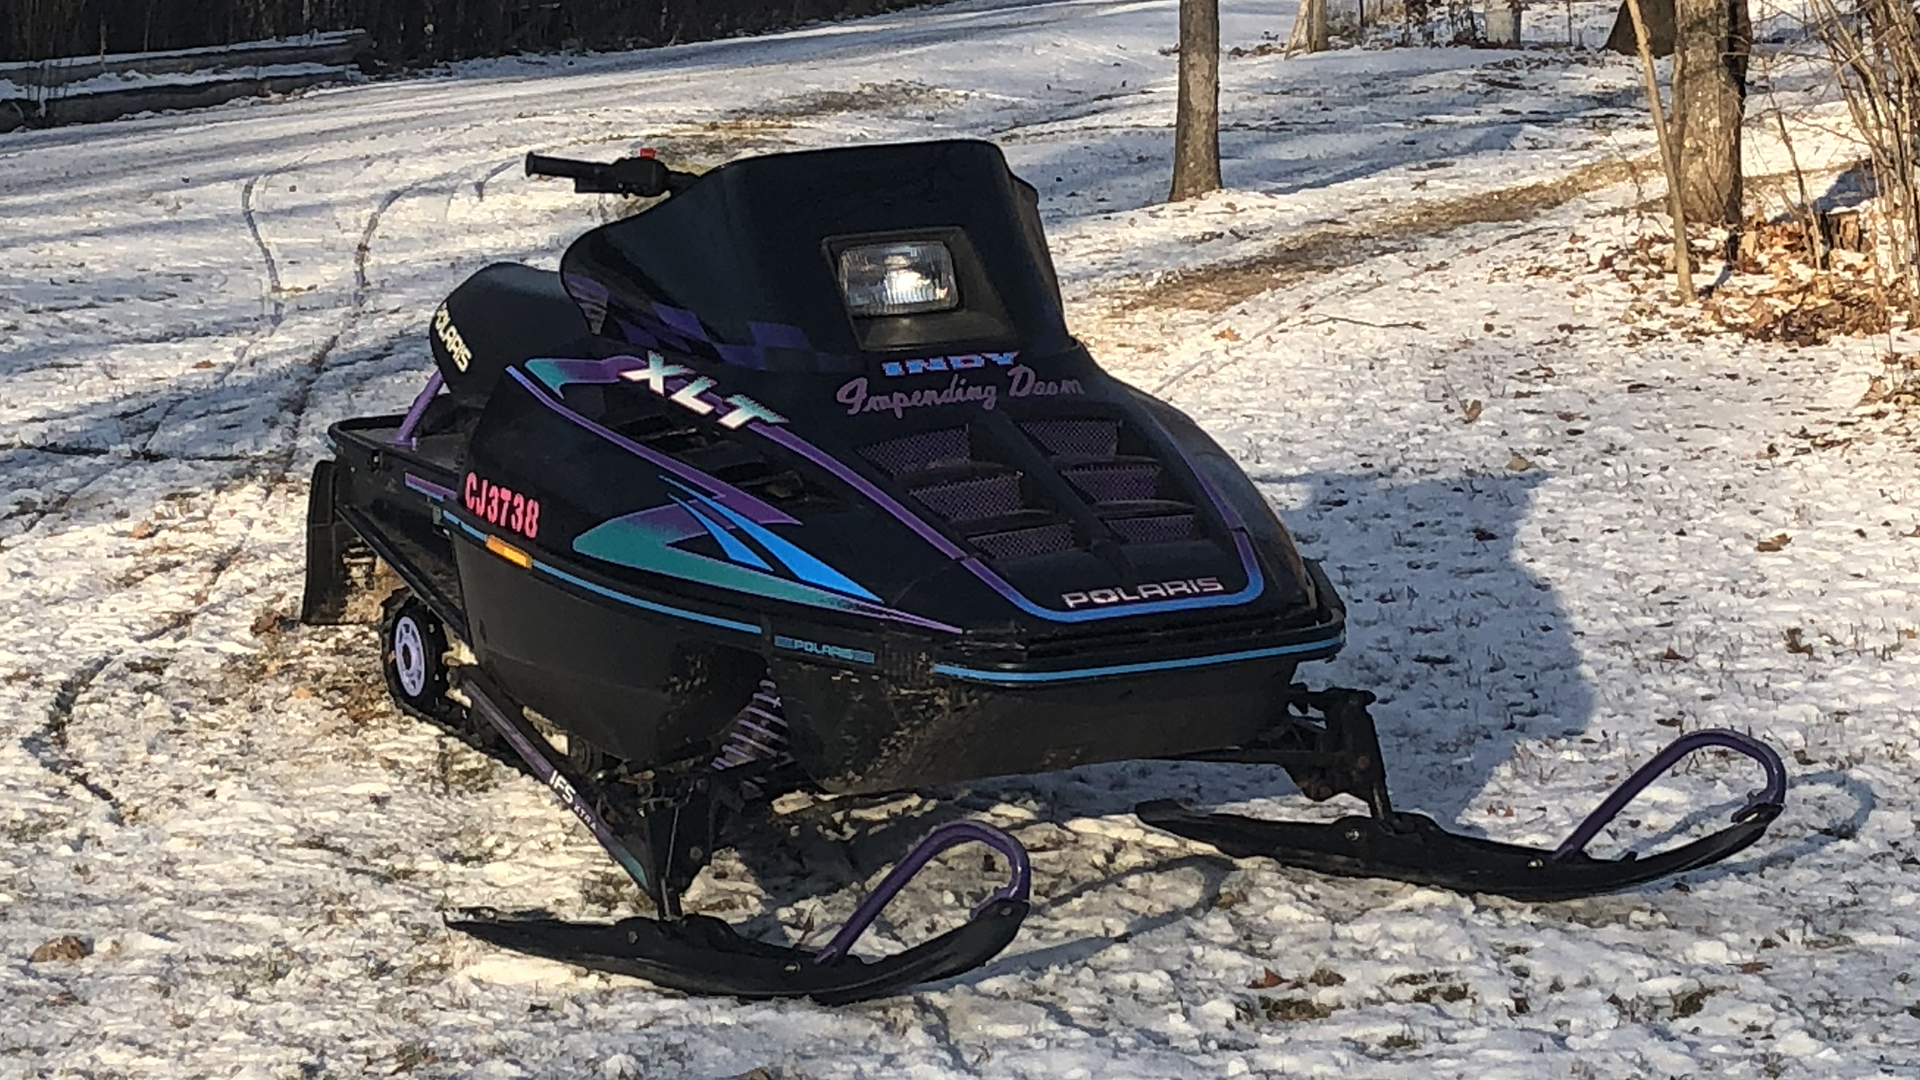 1 Pair For 2000 Polaris 600 Triumph Snowmobile~C /& A Pro 76000184